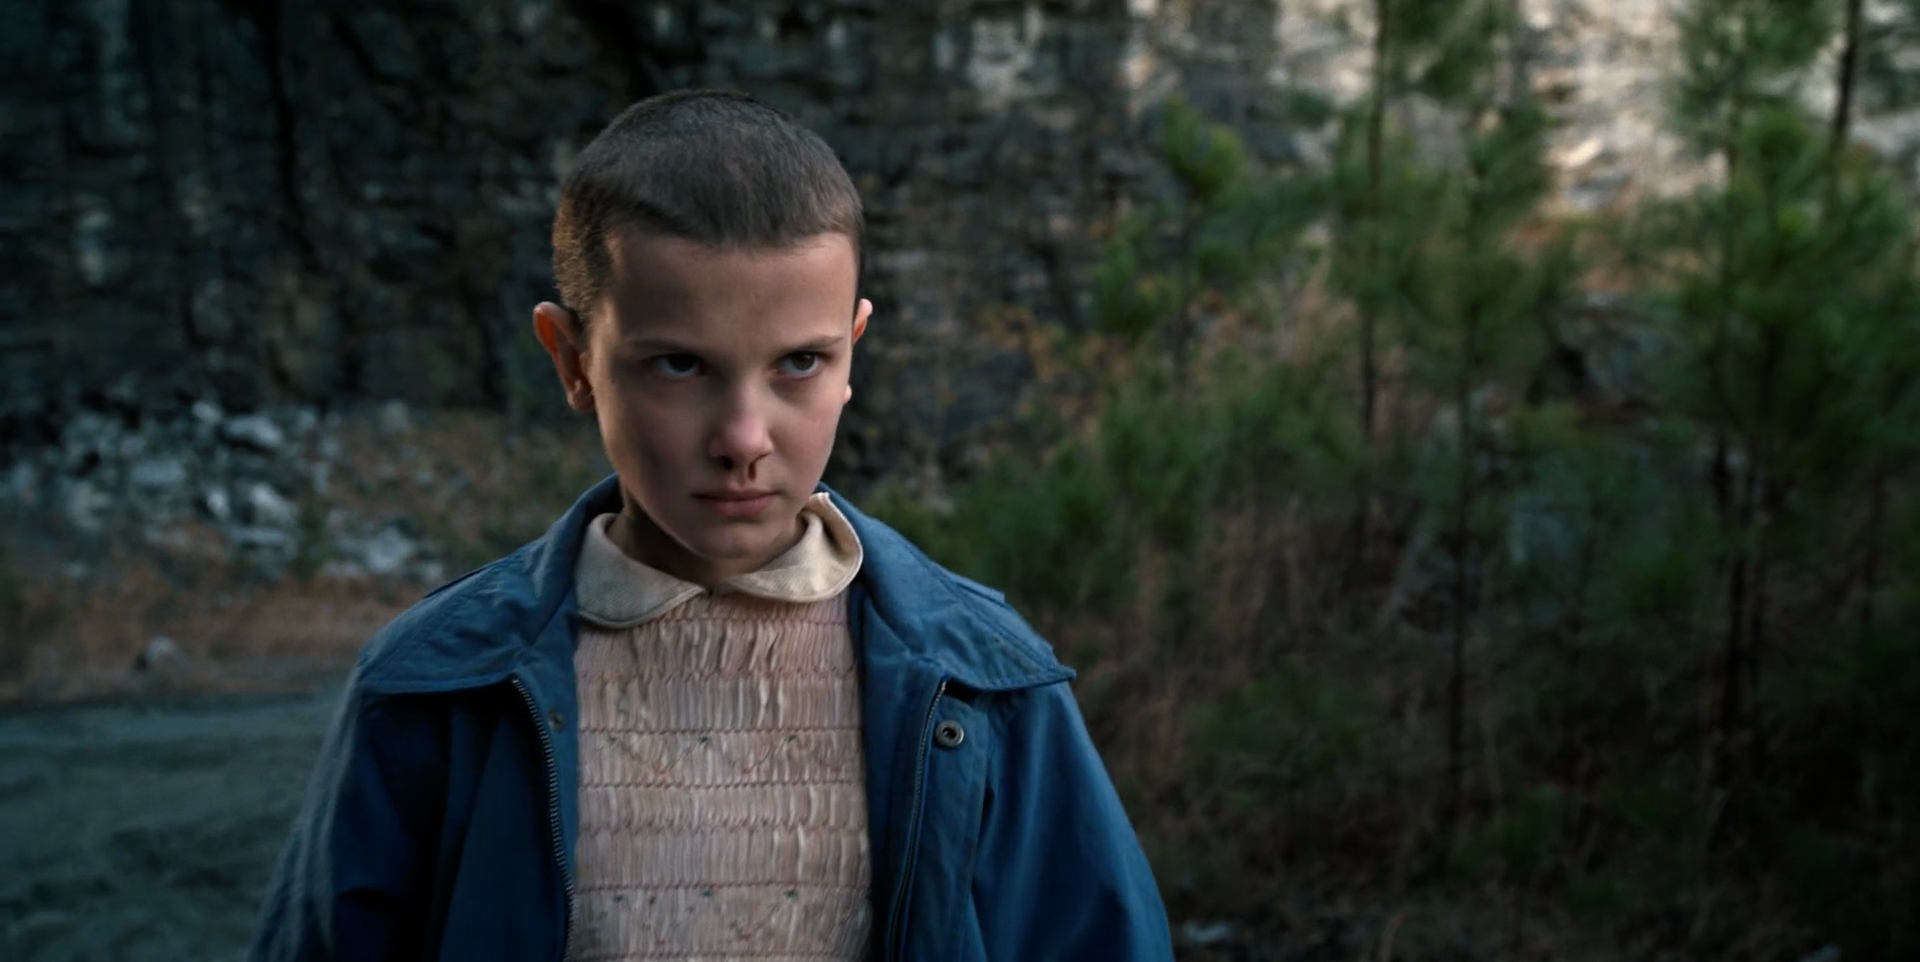 ELEVEN - Stranger Things Limited Edition Art Toy – KARMIEH Toy Design